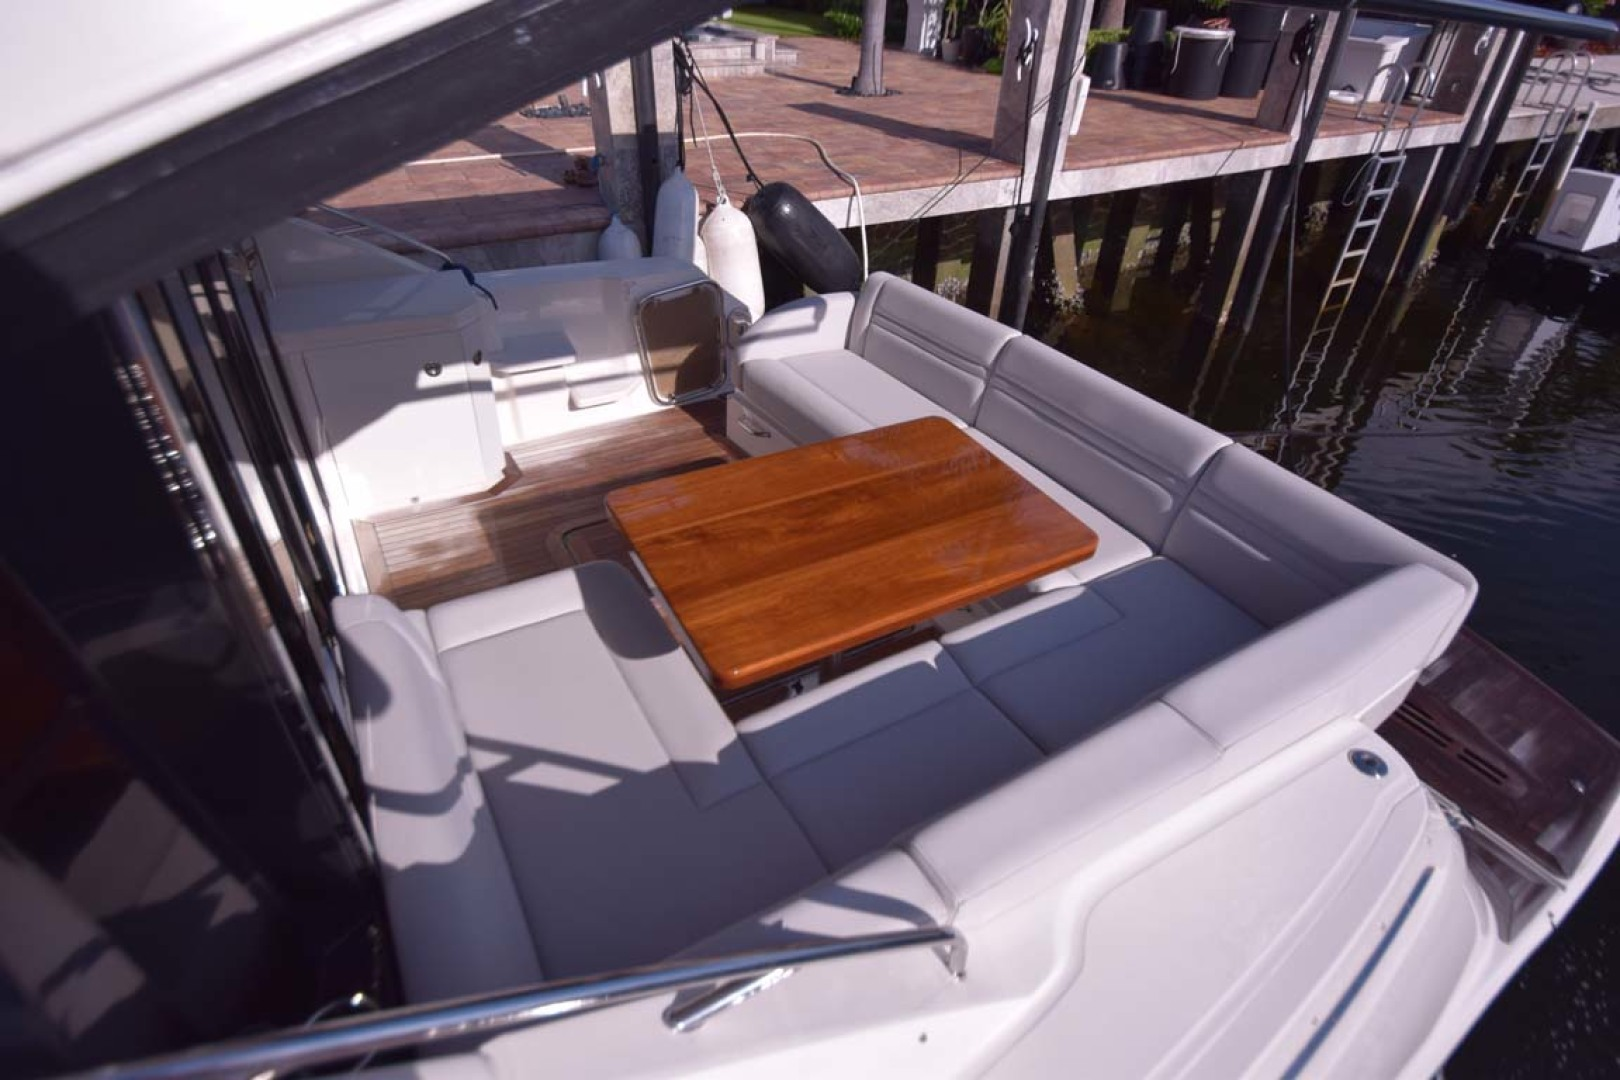 Sea Ray-510 Sundancer 2015 -Ft Lauderdale-Florida-United States-Aft Deck Seating From Starboard Side-1189914 | Thumbnail